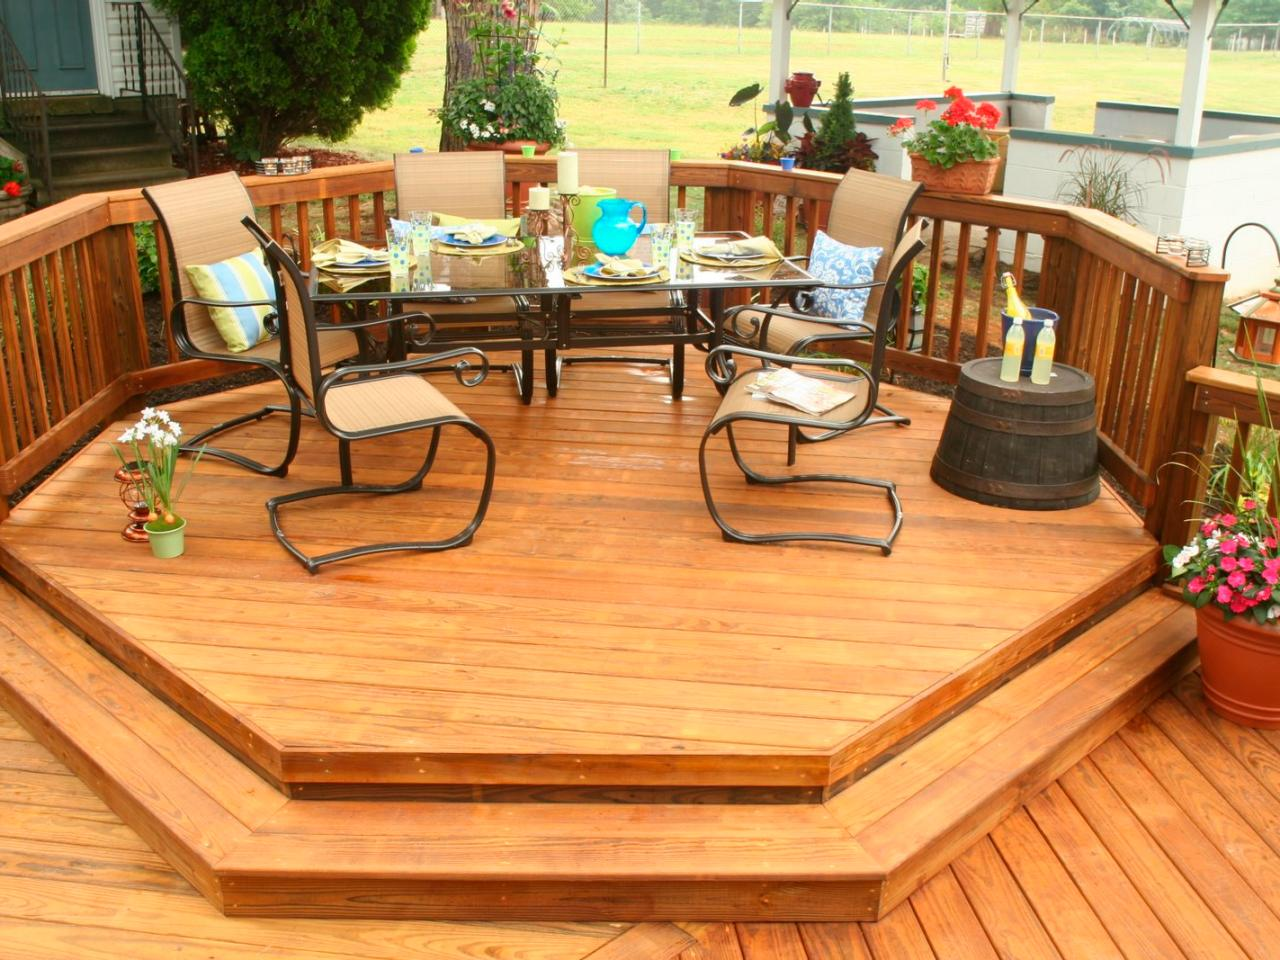 Deck designs ideas pictures hgtv Small deck ideas